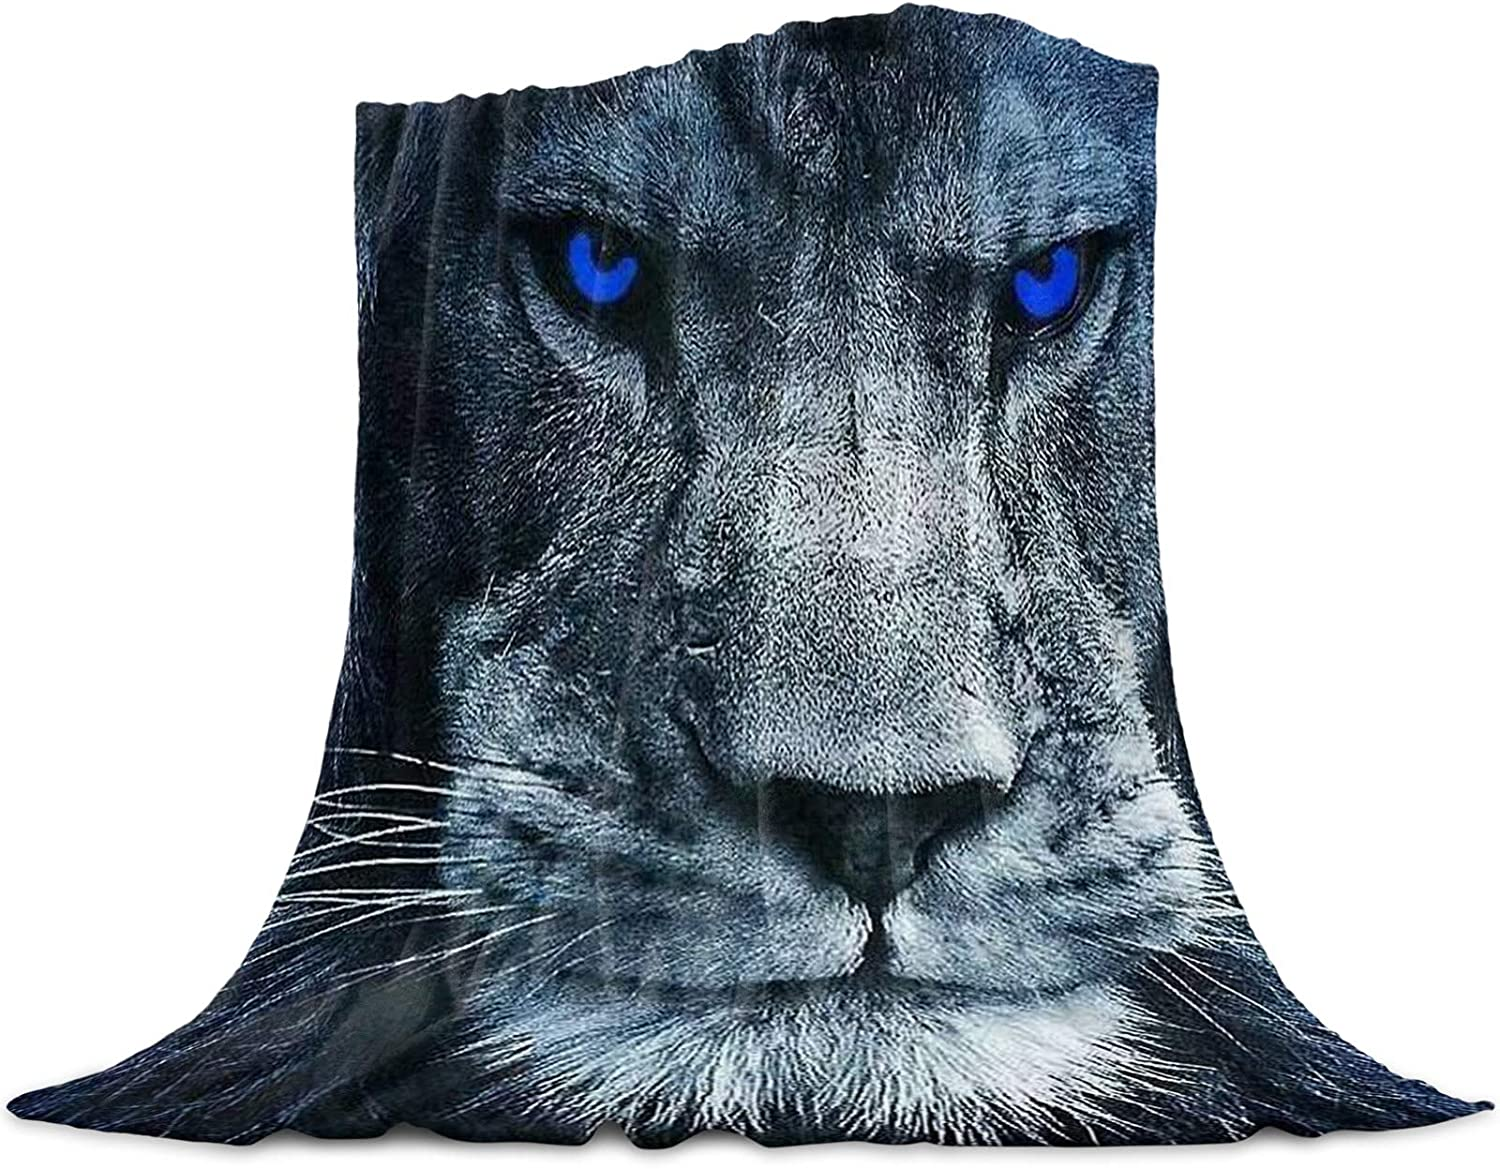 SODIKA Fleece Blanket Plush Throw Super Lightweight Fuzzy M New Shipping 70% OFF Outlet Free Soft